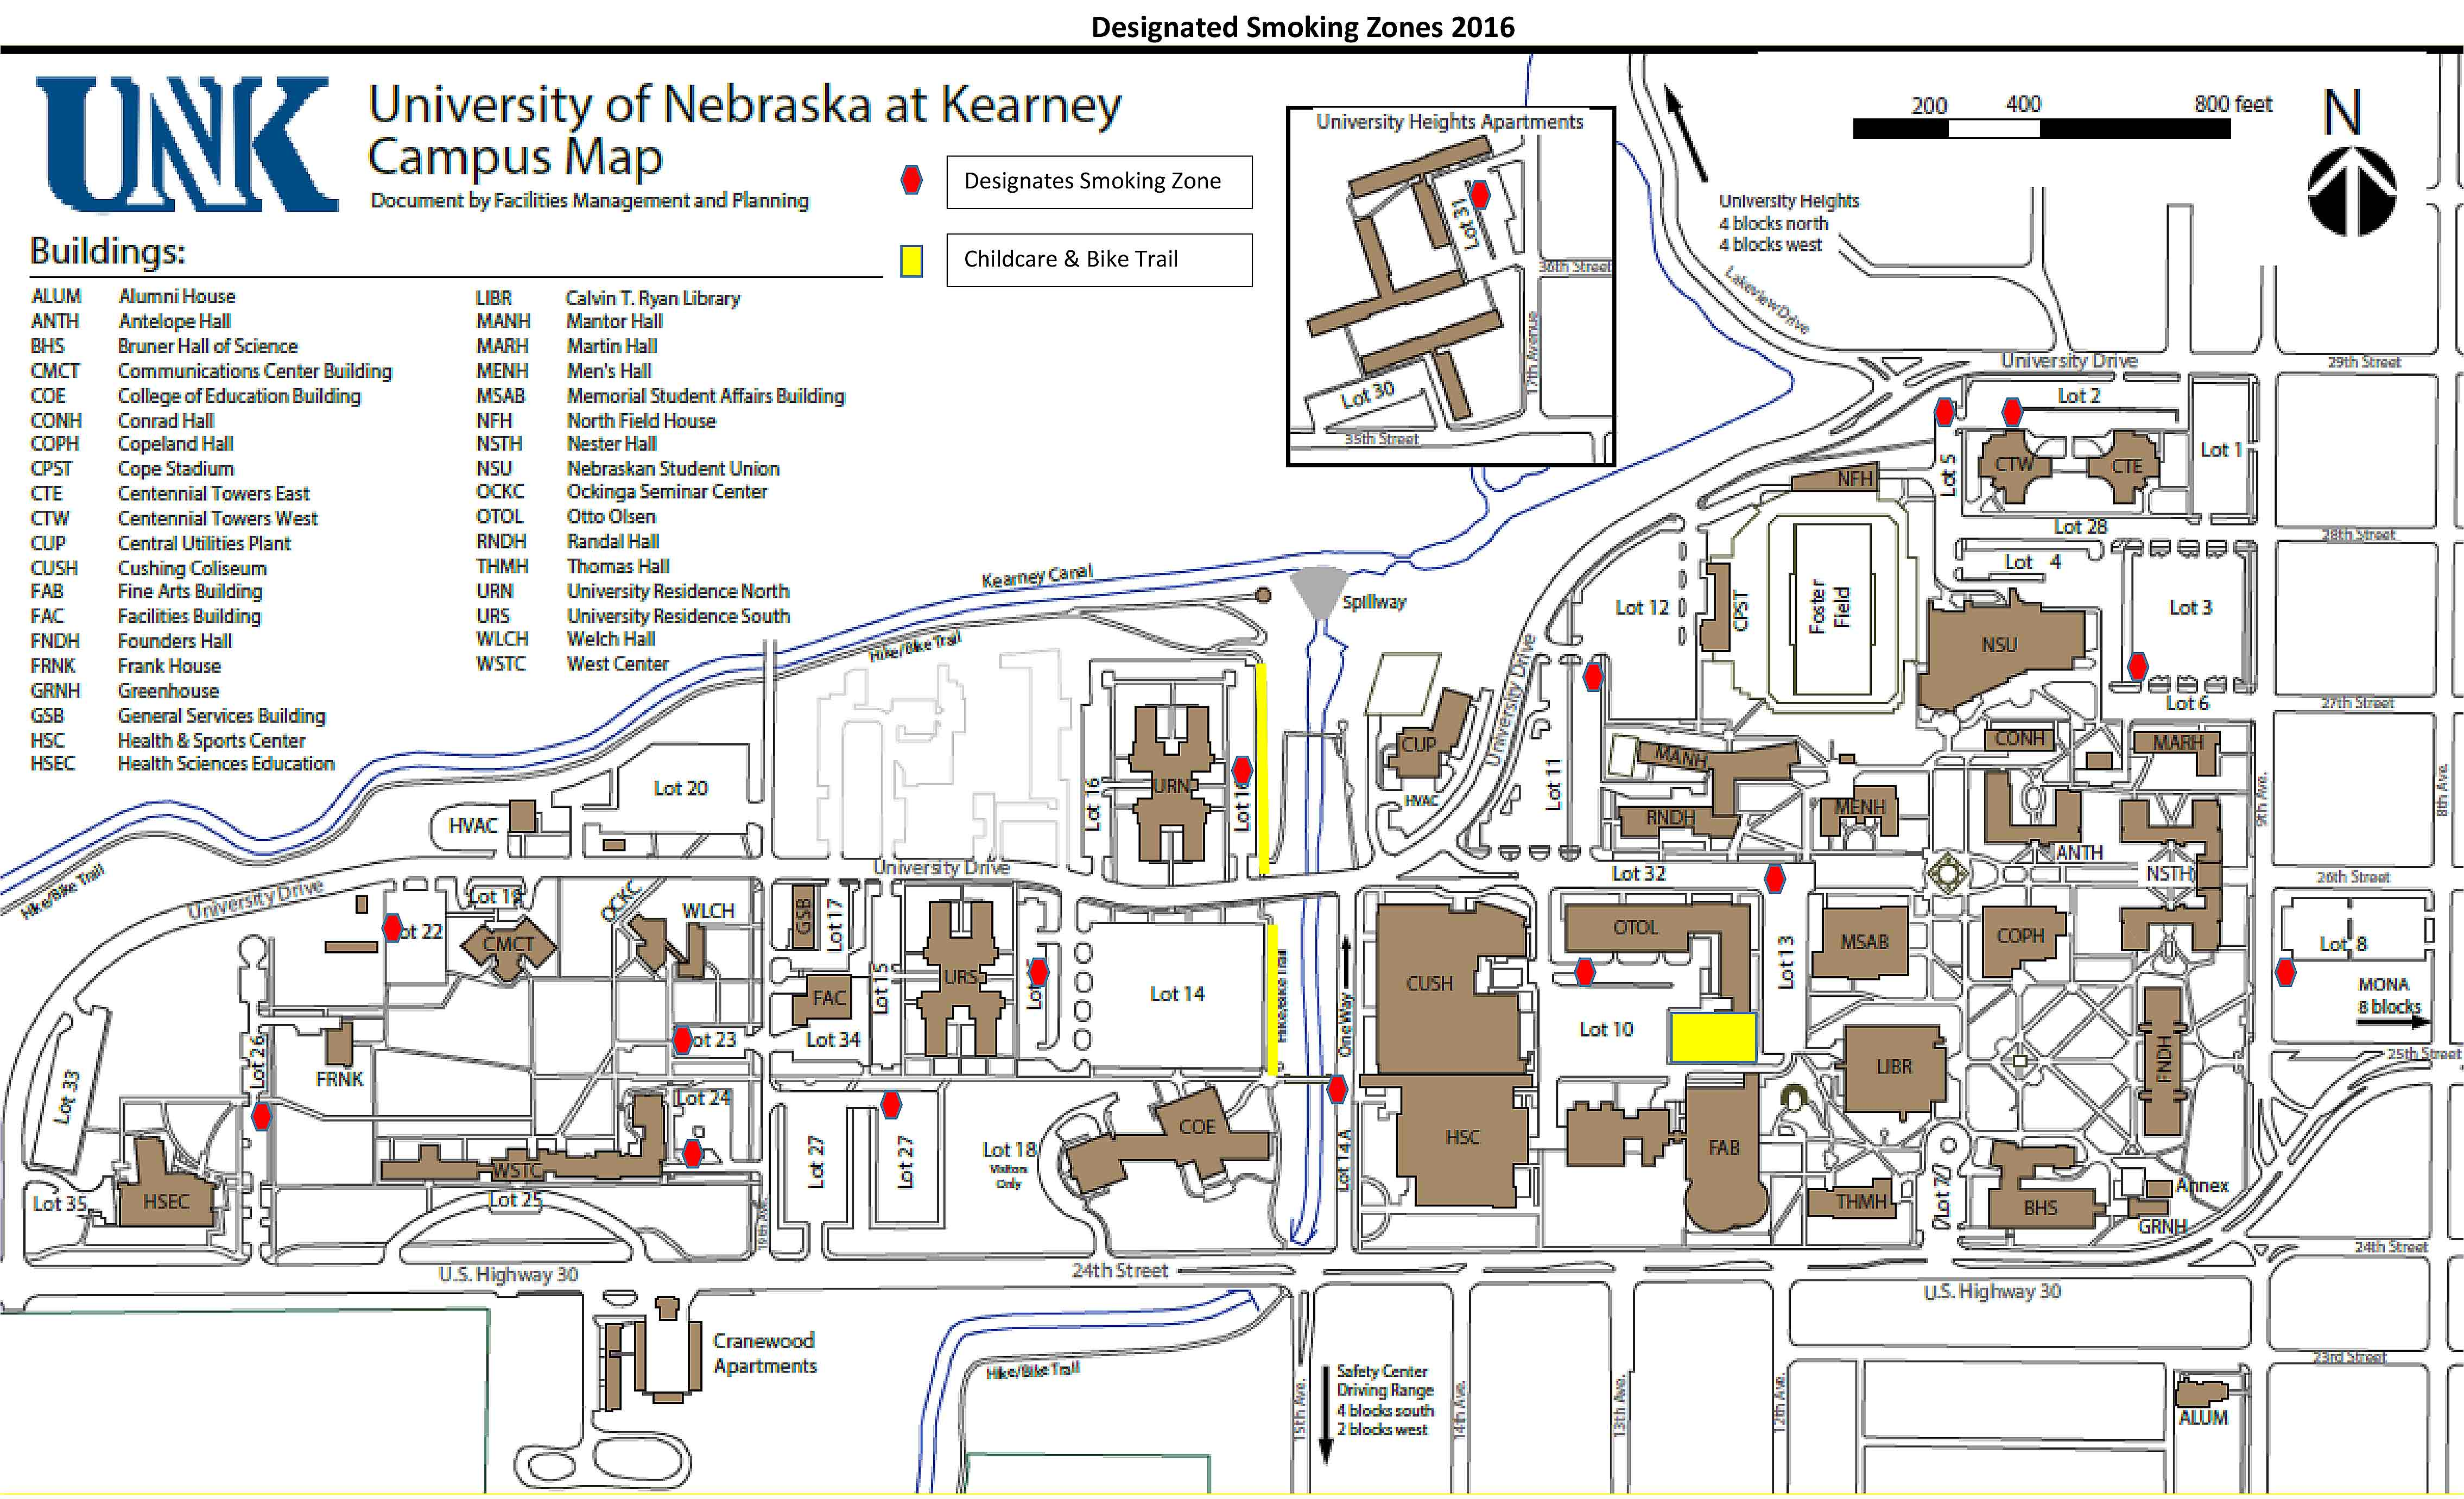 UNK implementing new tobacco policy Aug. 1